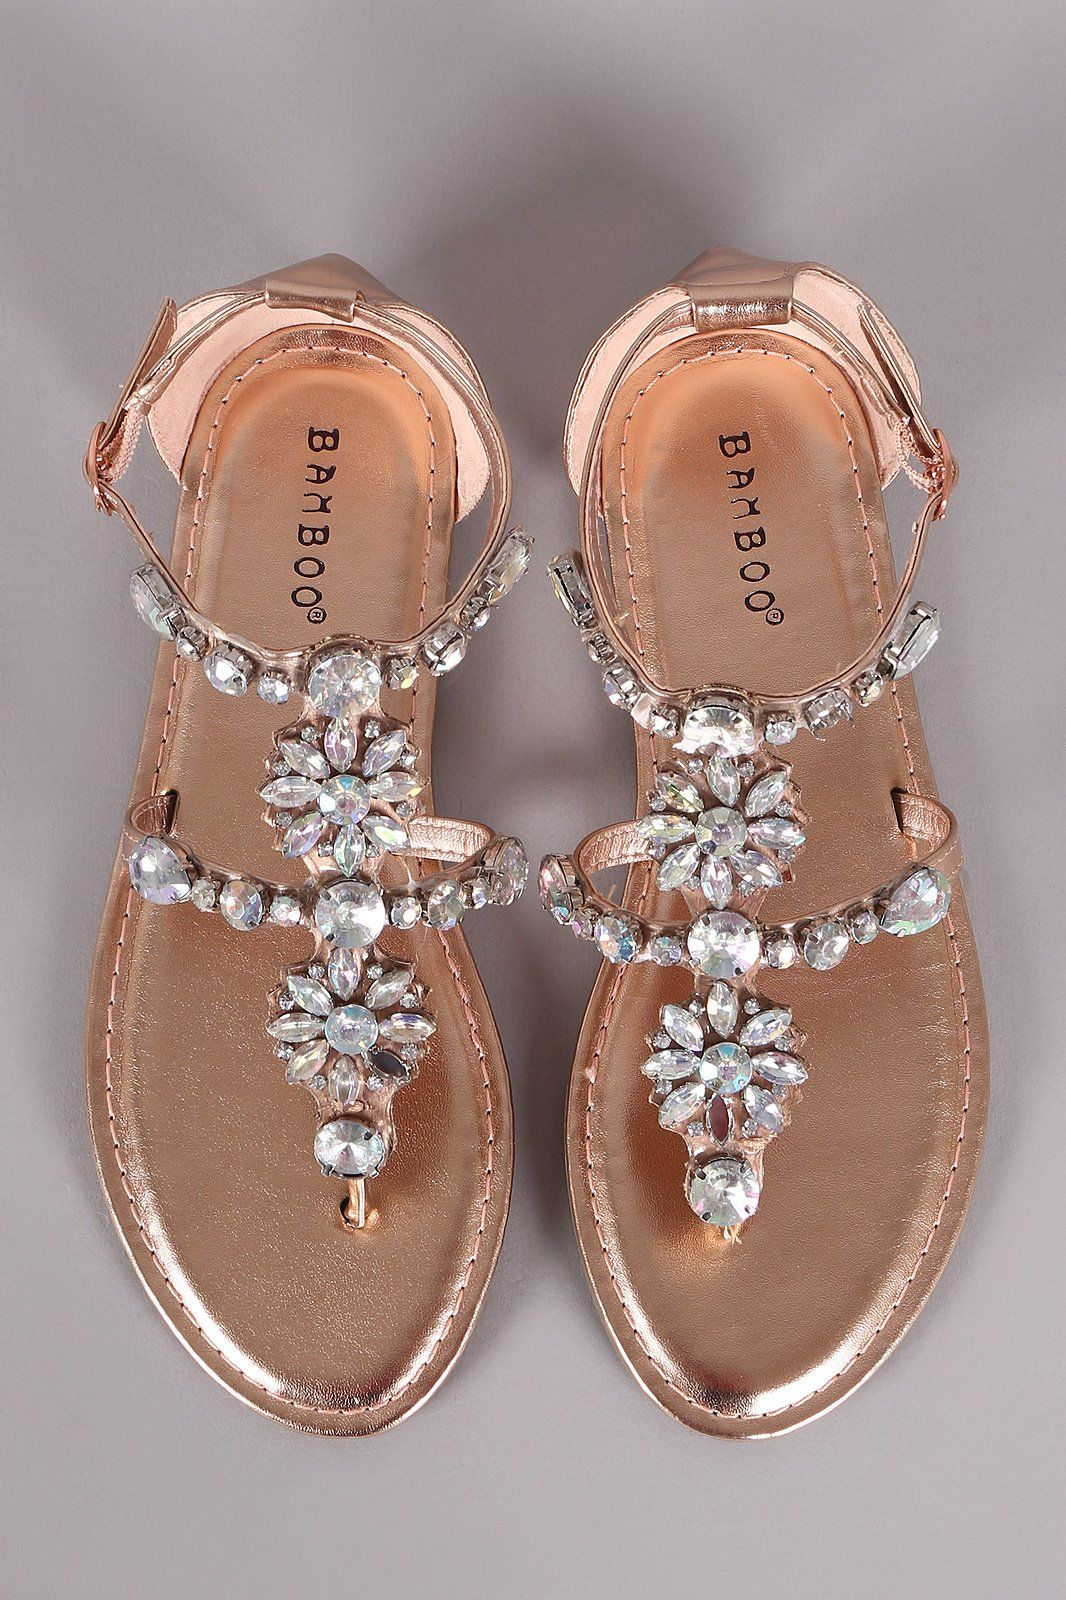 f8a8048a8f3 This cute flat sandal features rhinestone embellished T-strap design ...